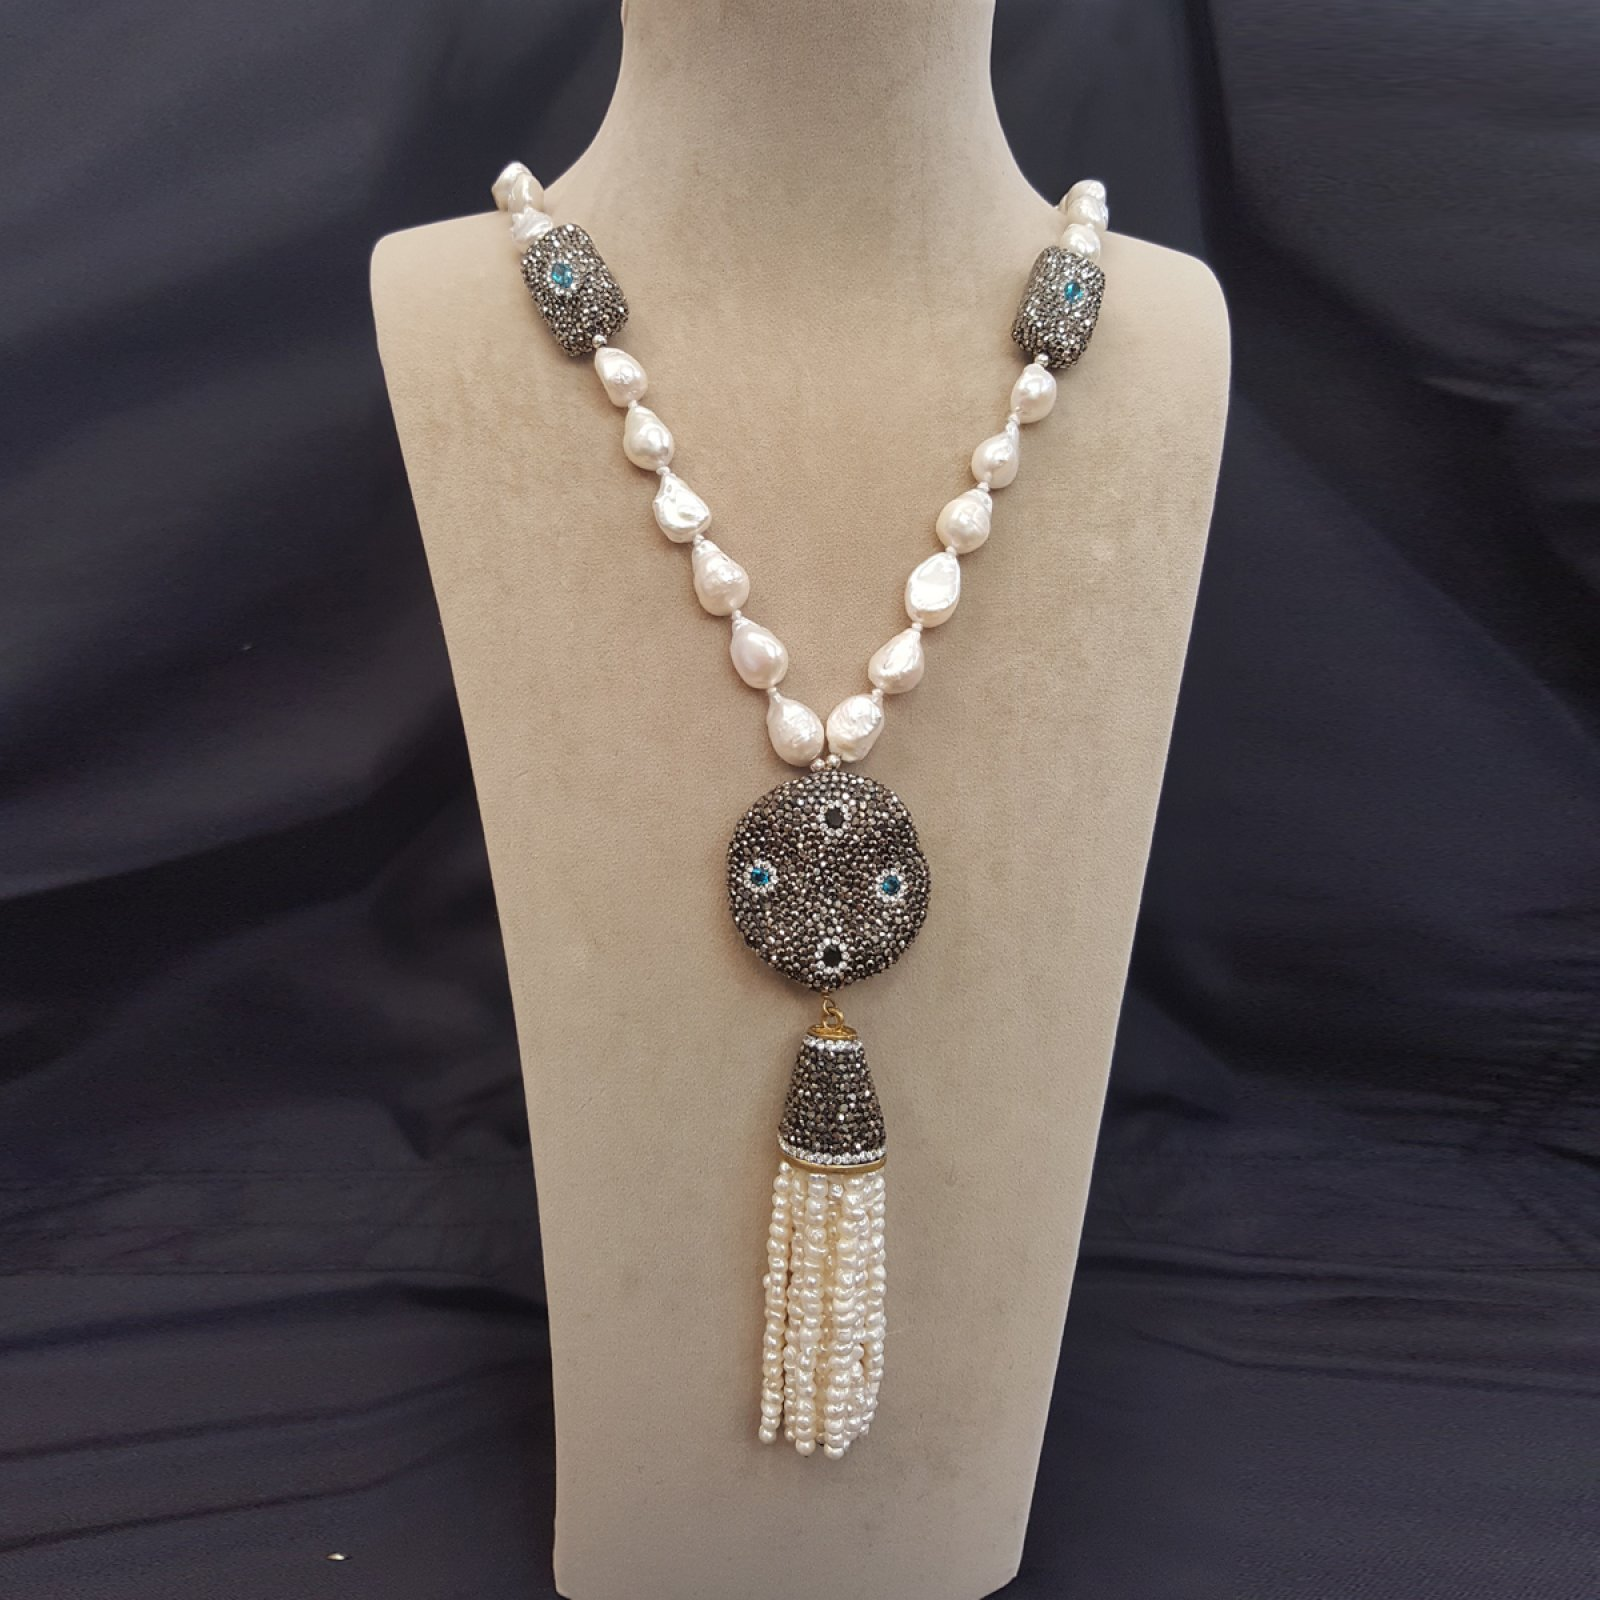 DRN15 - BAROQUE PEARL NECKLACE WITH SWAROVSKI OBJECTS